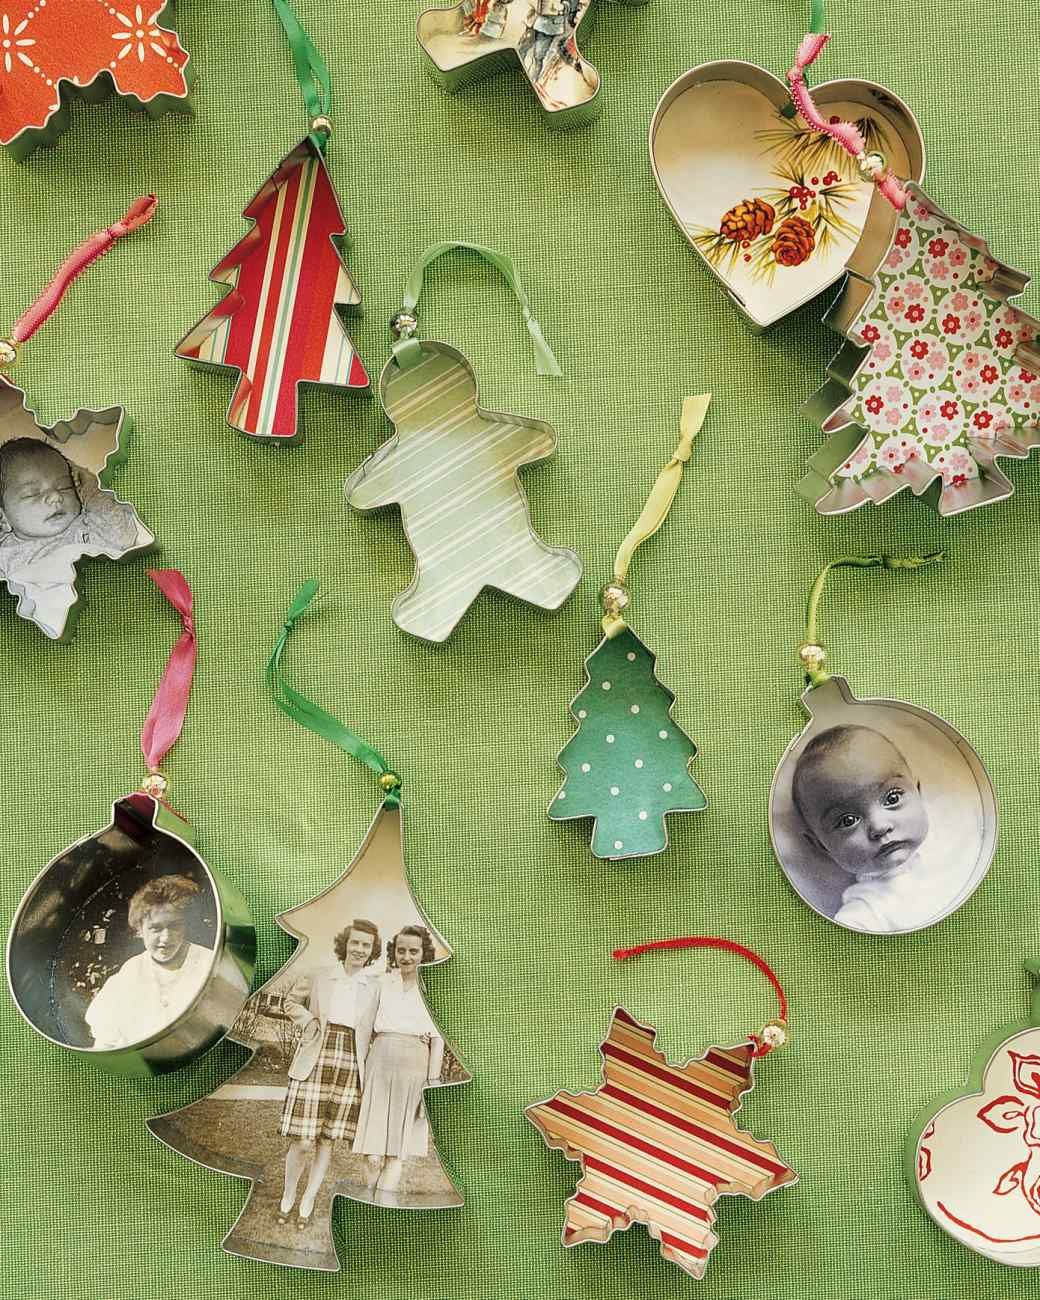 50 wonderful and simple diy christmas tree decorations youll love making - Homemade Christmas Tree Decorations